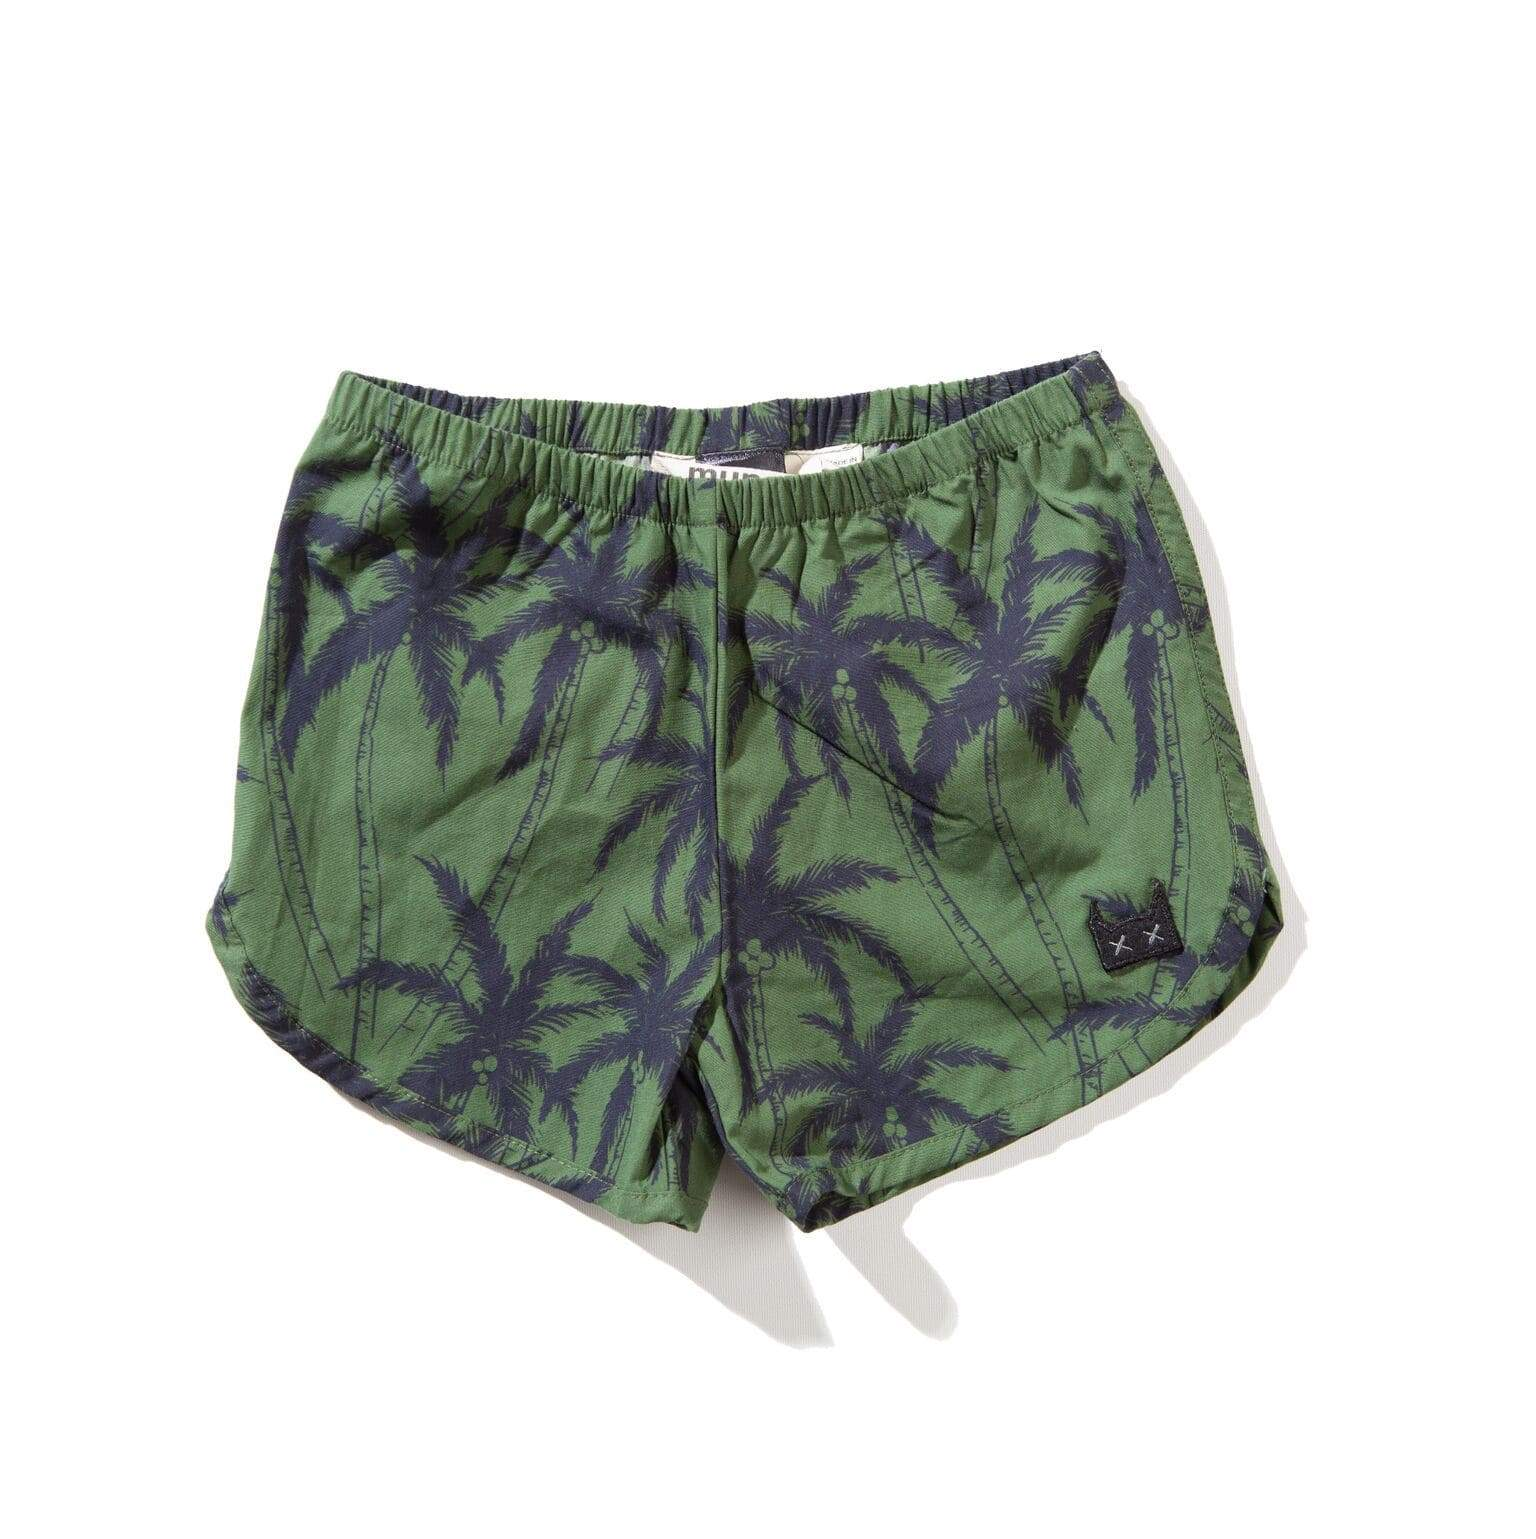 Munster Shorts 0-3m Coconuts Short - Palm Yardage